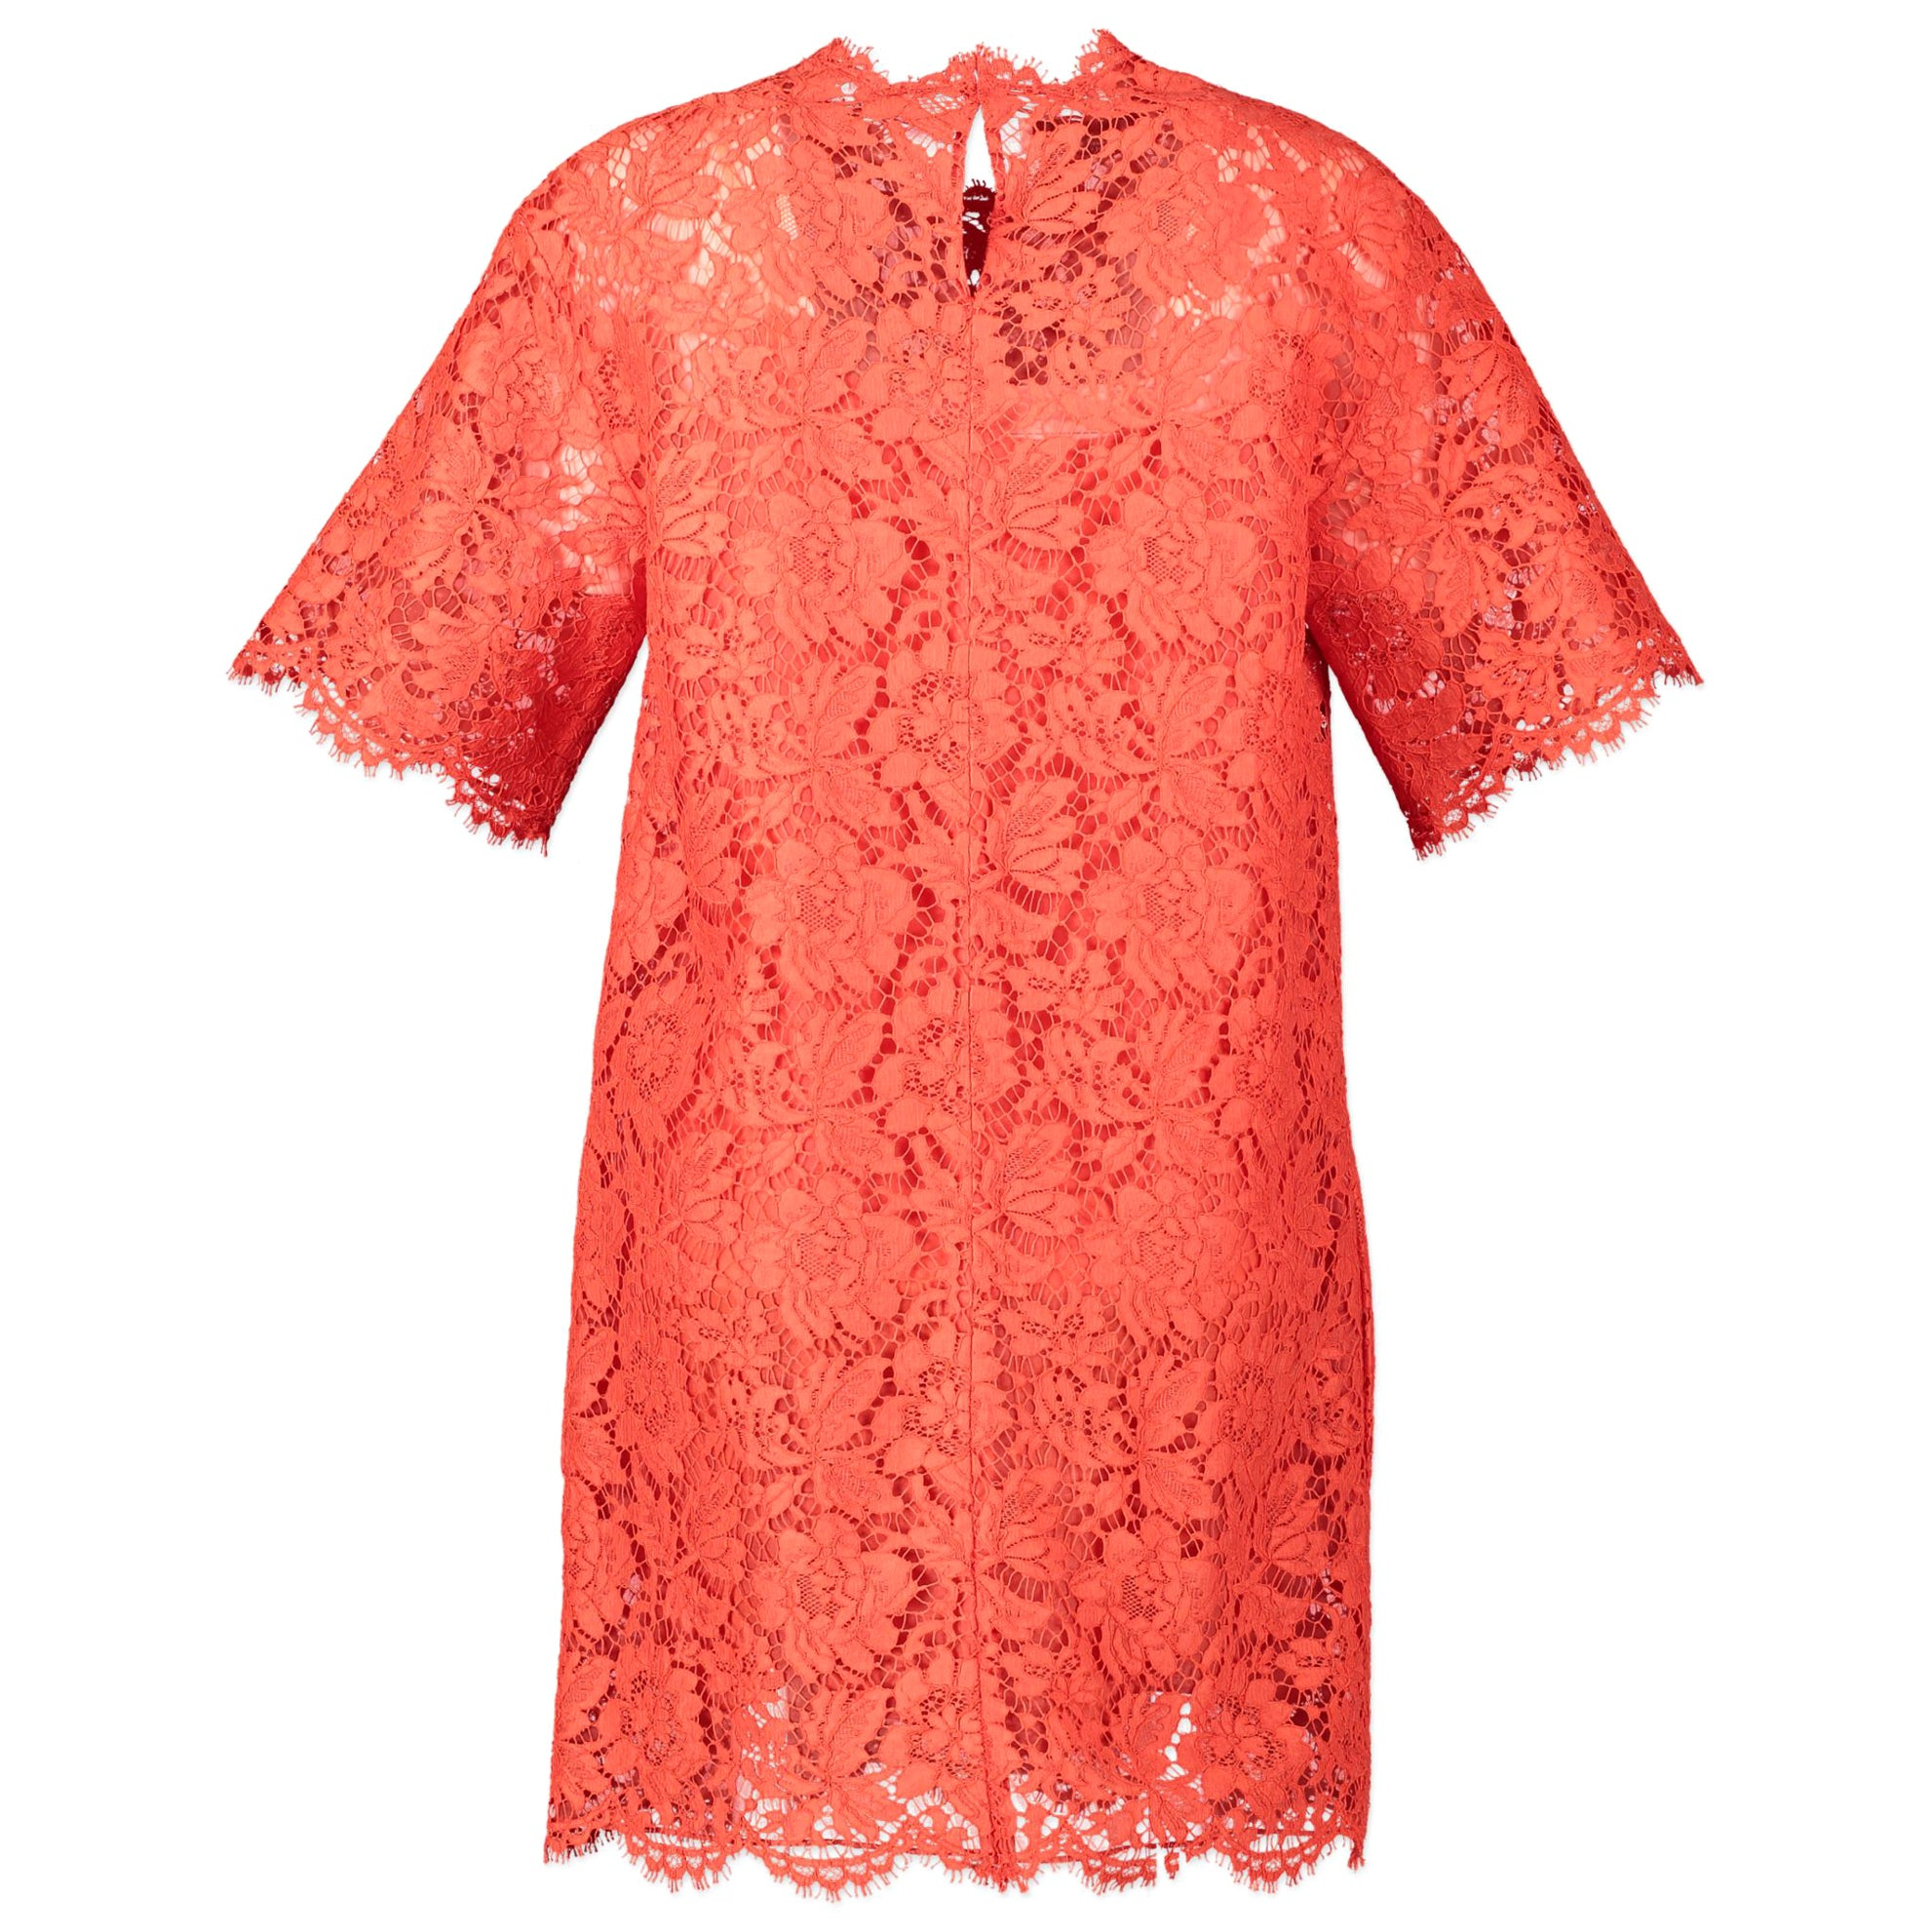 Valentino Red Lace Dress - Size 40